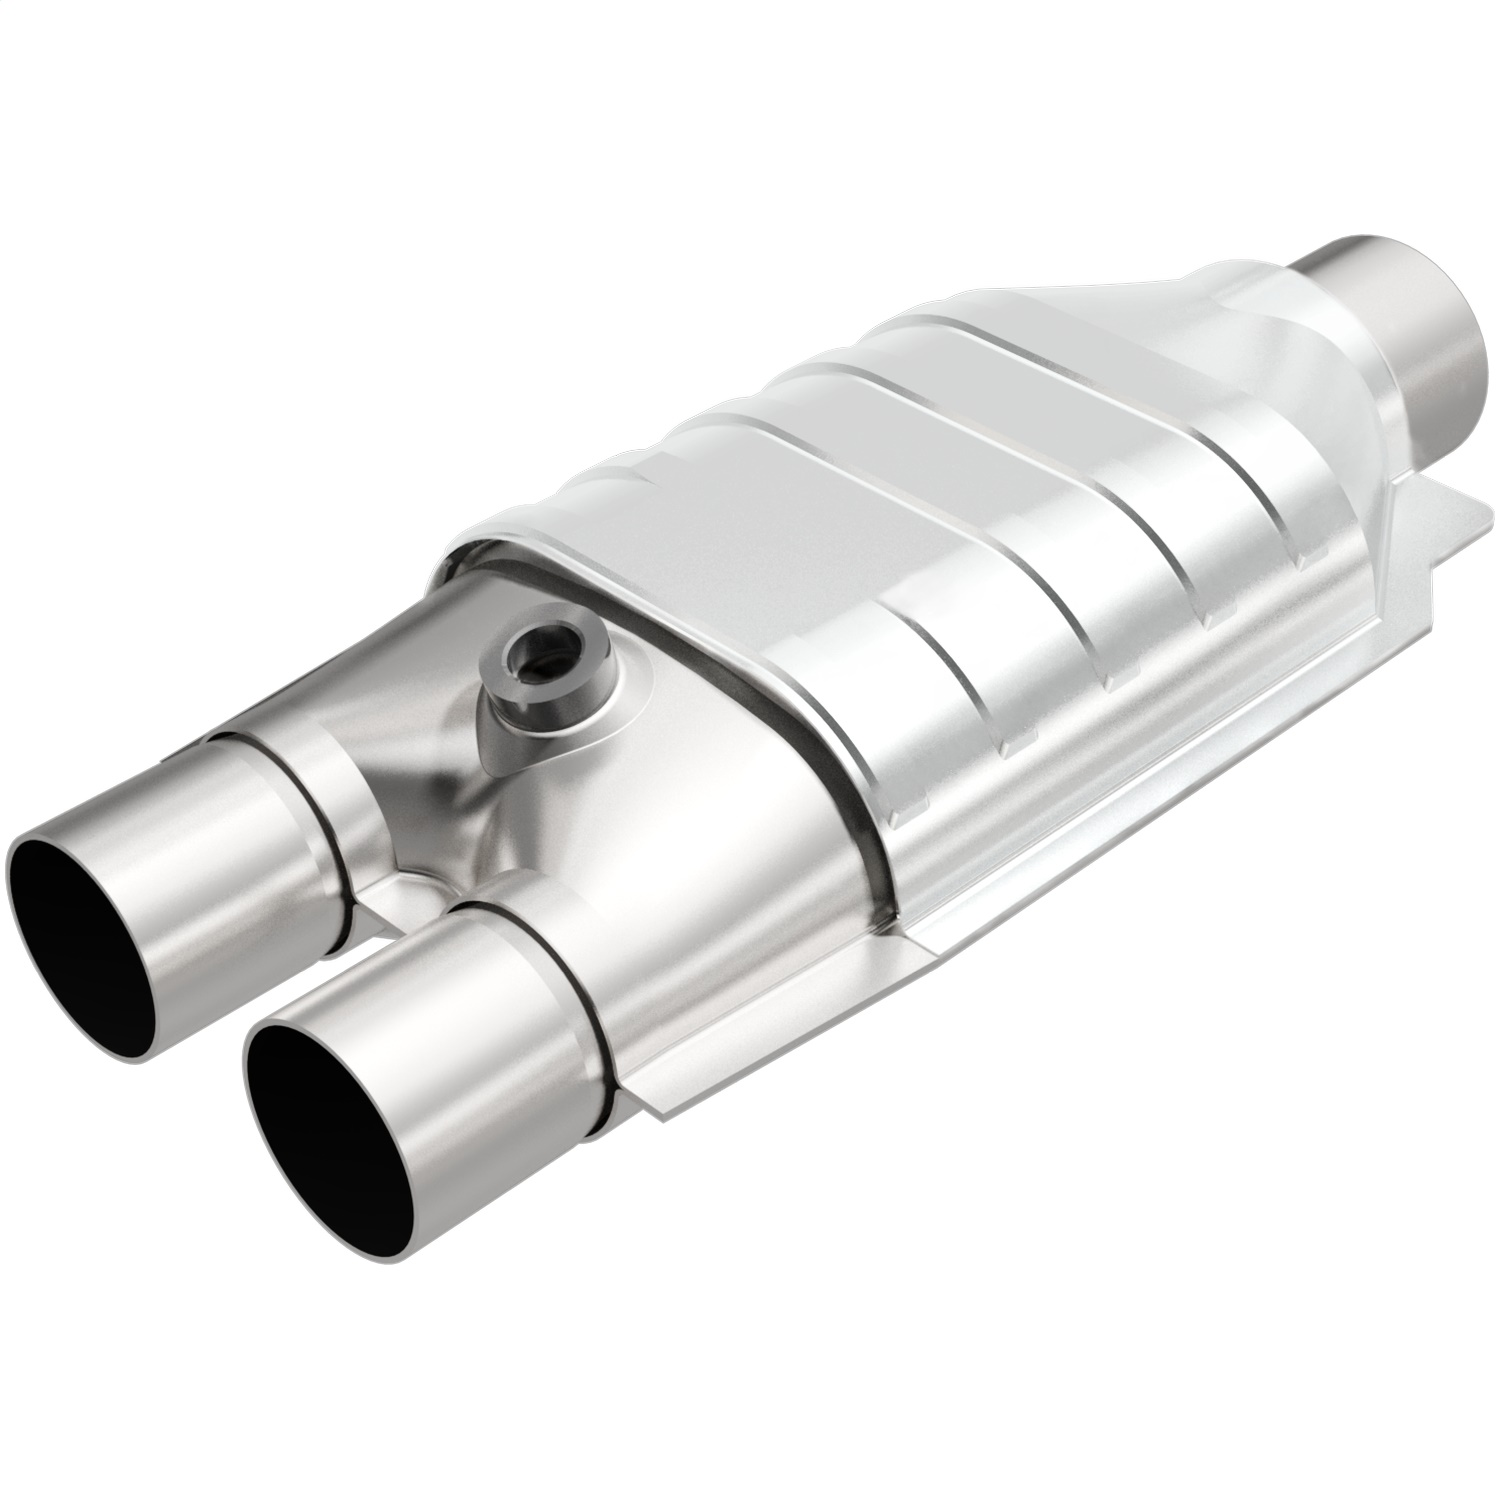 MagnaFlow Exhaust Products Catalytic Converter (445037)